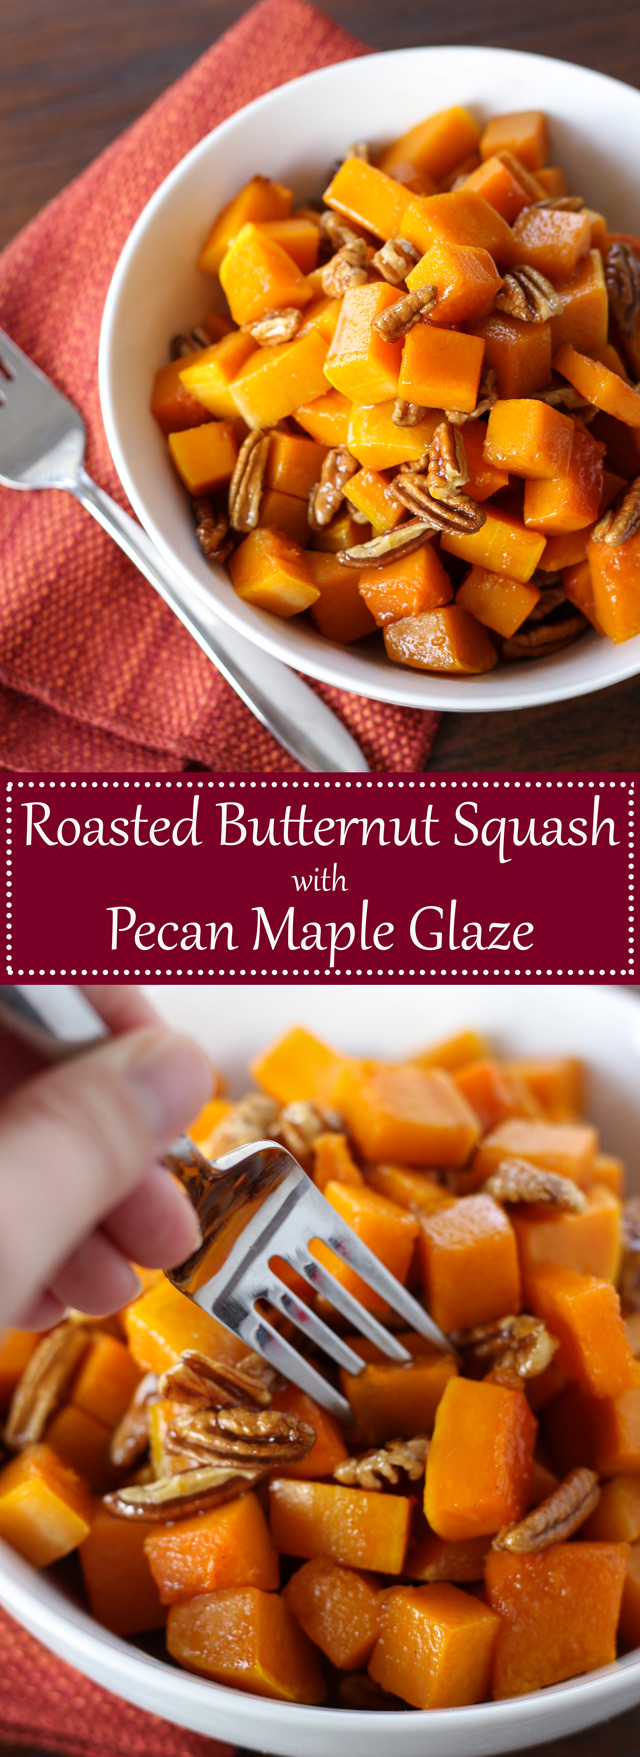 Butternut Squash with Pecan Maple Glaze - so simple and the perfect side dish for the fall!